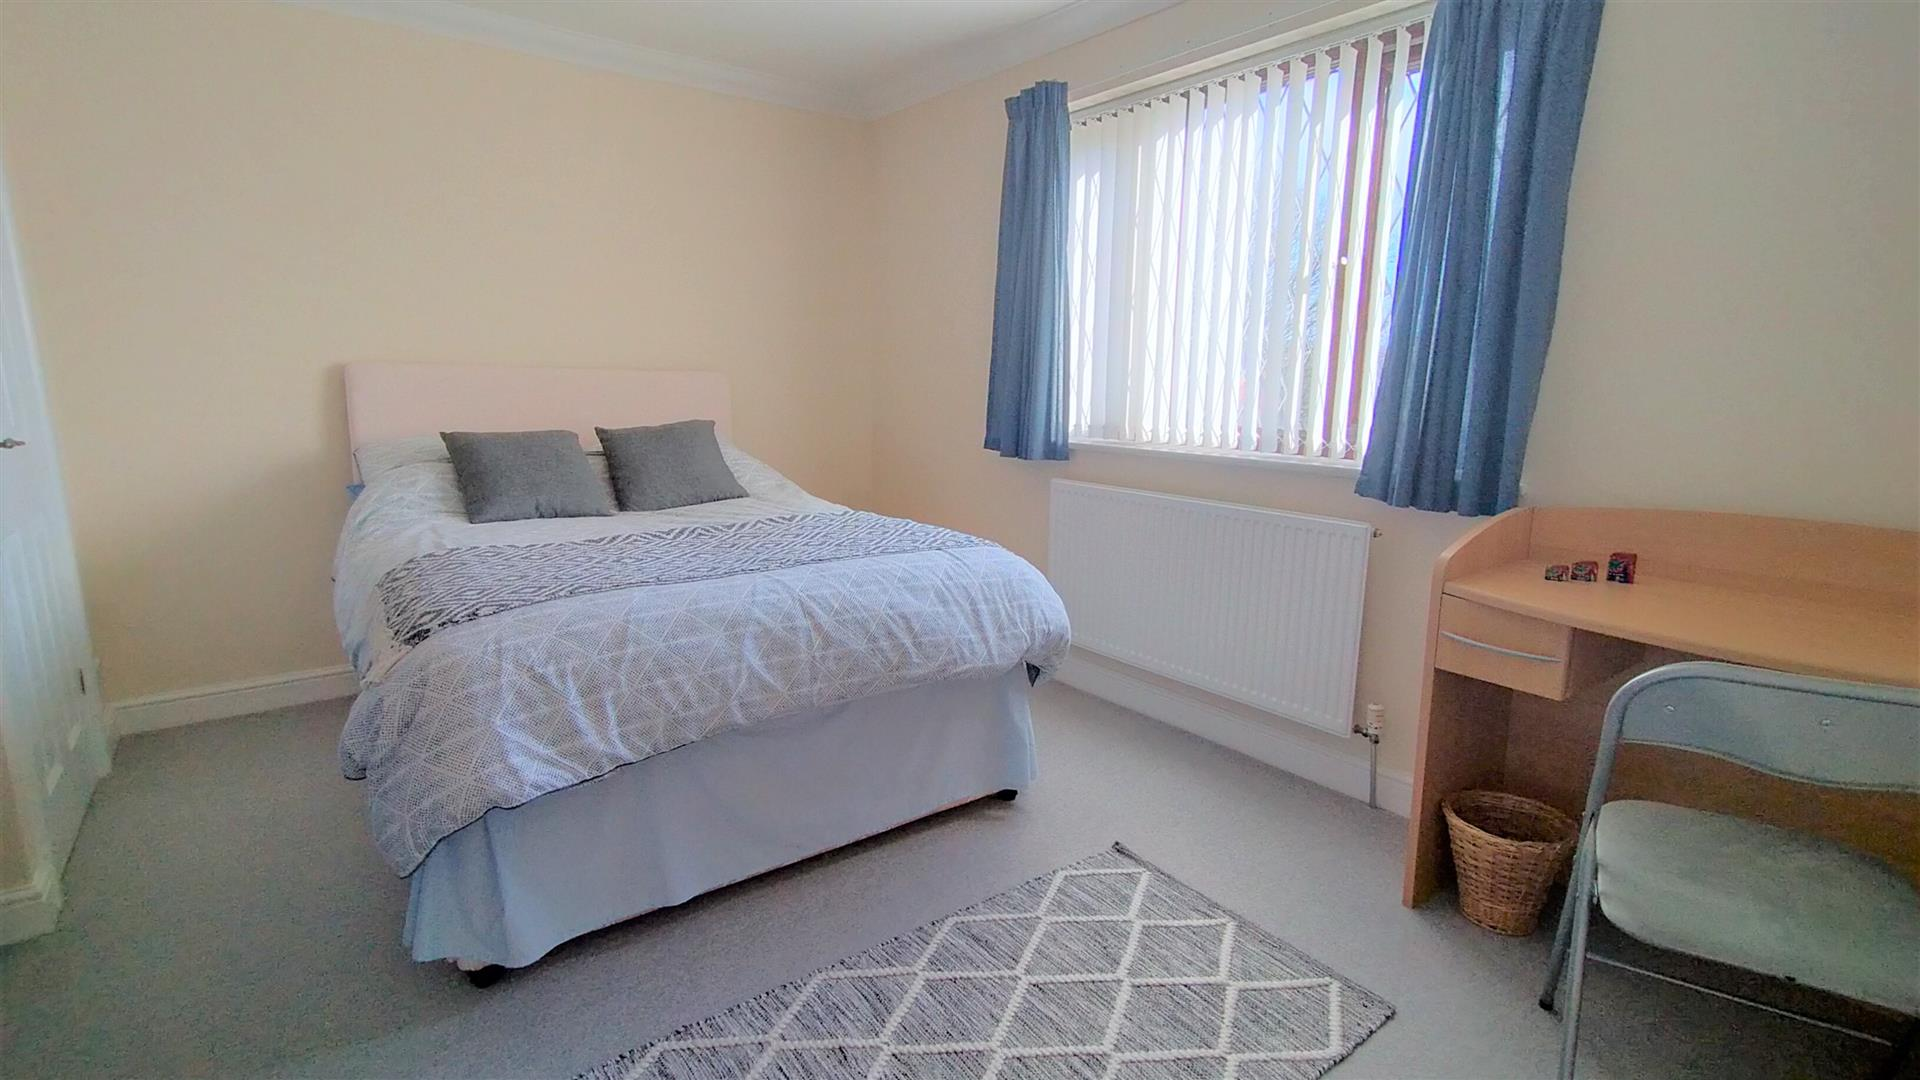 Pennard Road, Kittle, Swansea, SA3 3JG